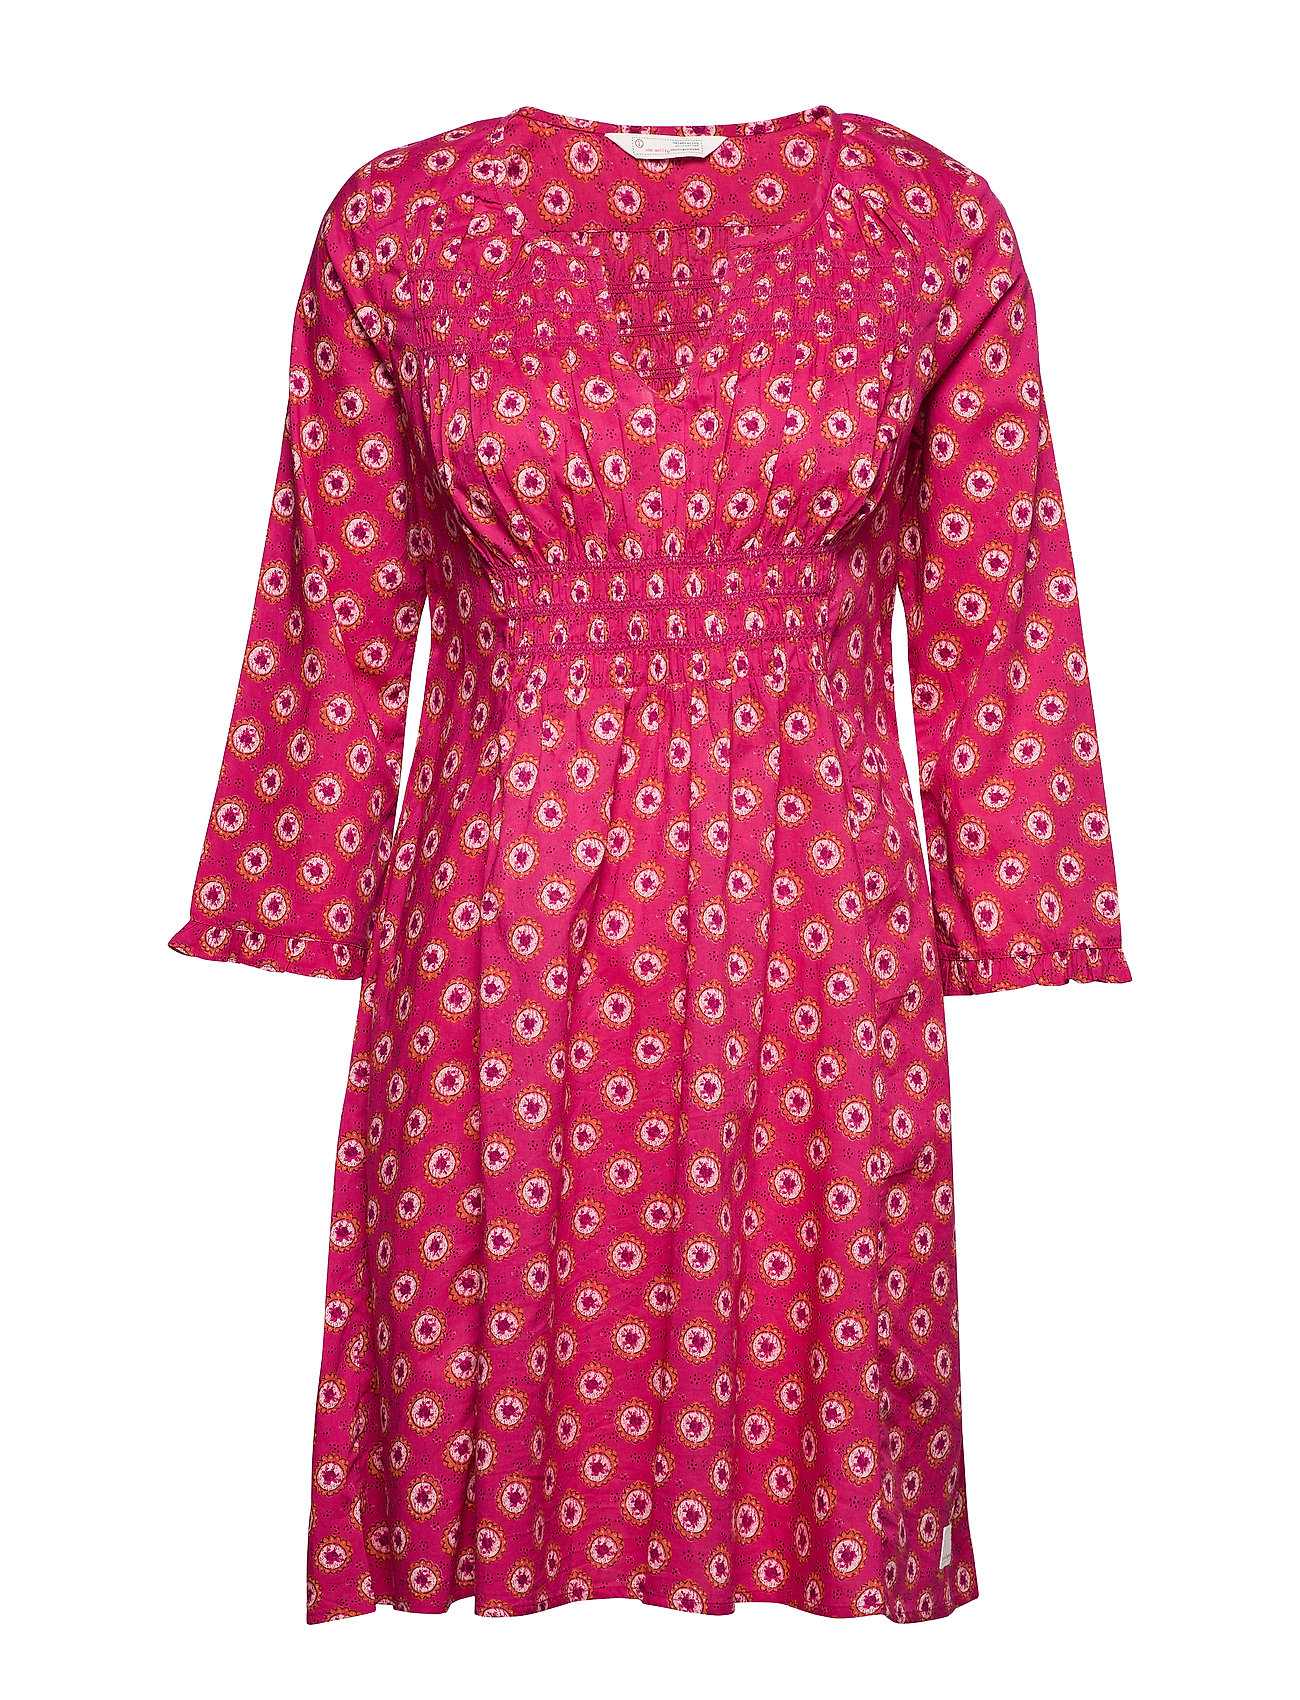 ODD MOLLY Calling For Dress - DEEP PINK